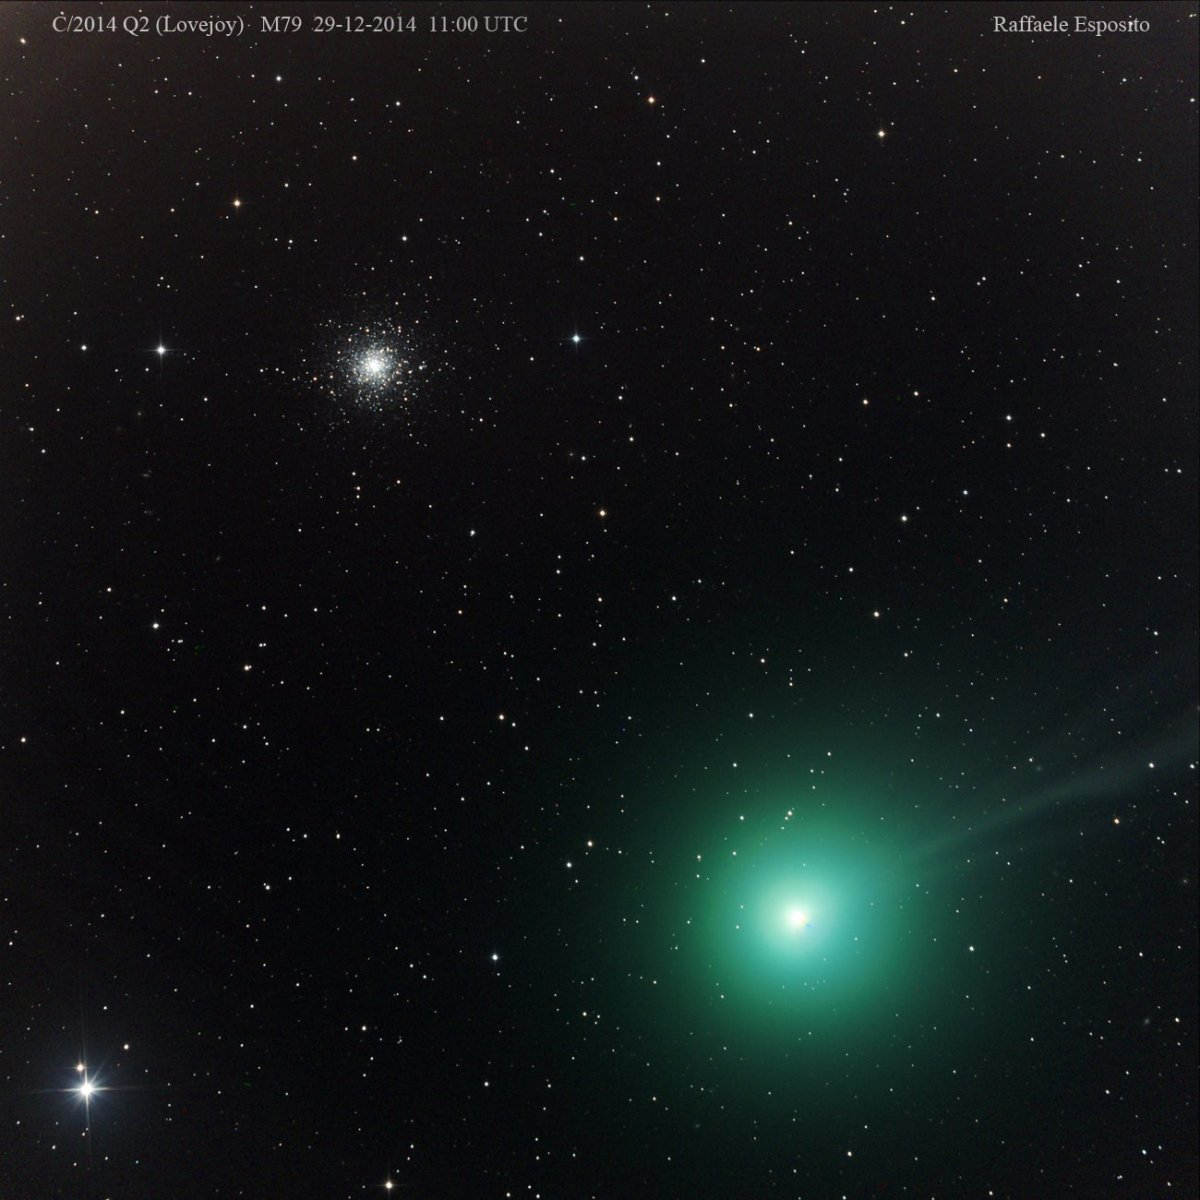 Comet Lovejoy, taken with a 20-inch remote telescope in Siding Spring, Australia. A star cluster, called Messier 79, is also seen.